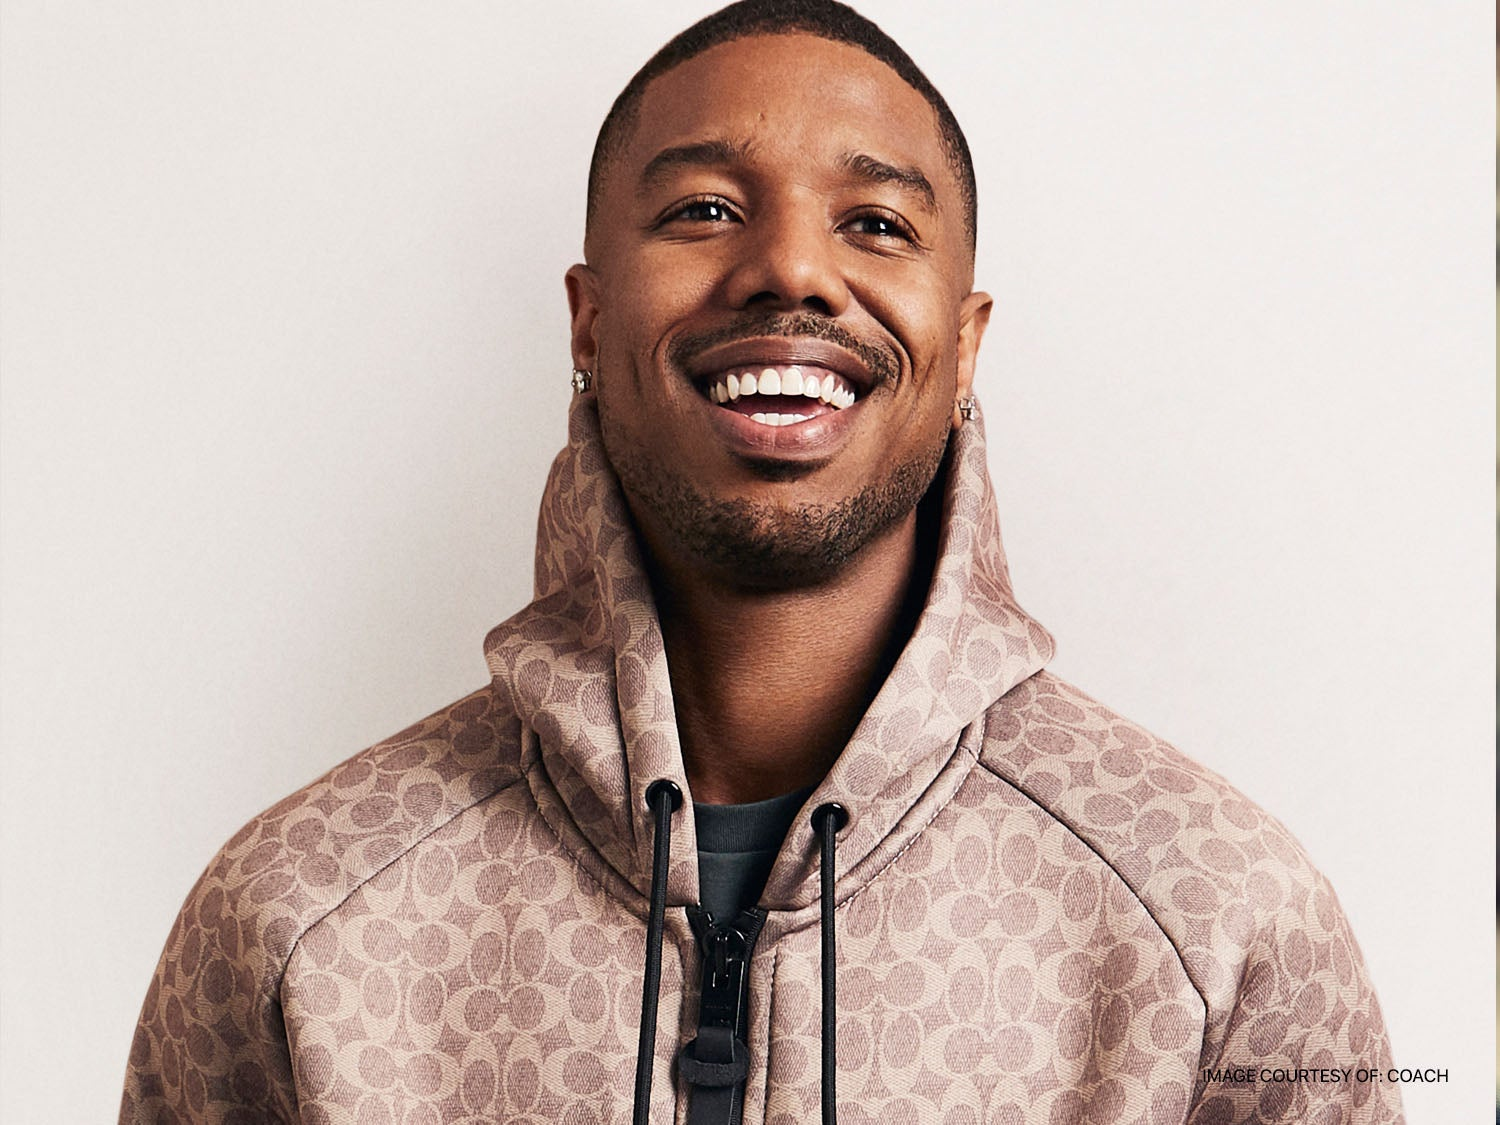 a631605a4061 Making moves  Michael B. Jordan named the 1st global menswear face of Coach